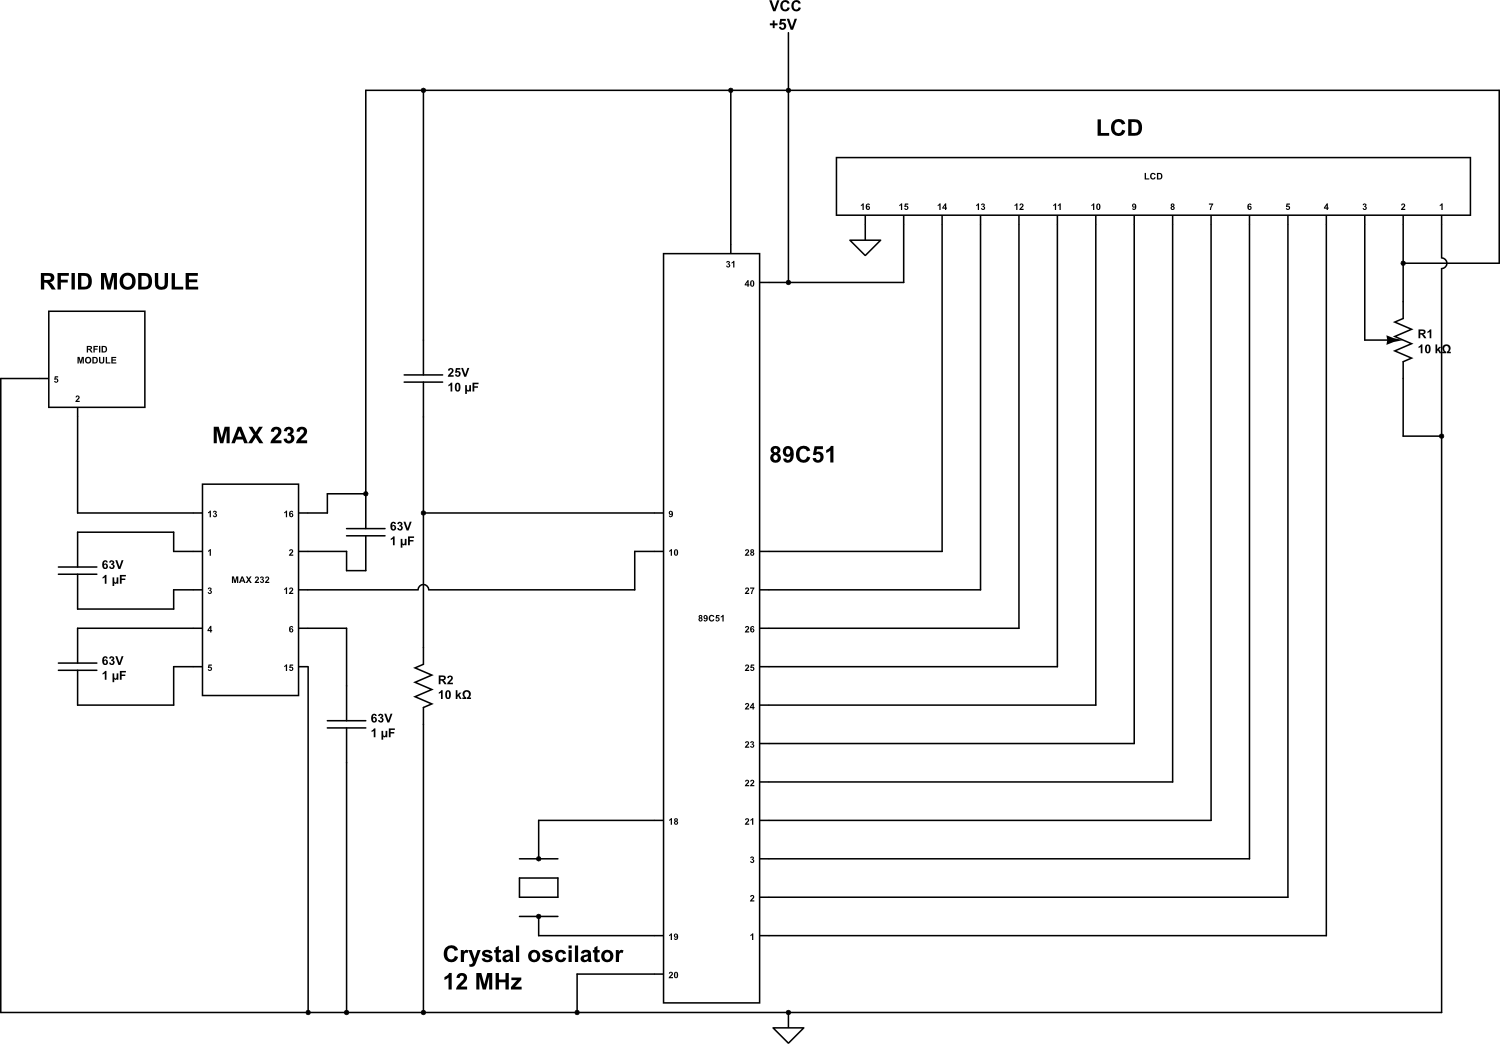 8051 microcontroller circuit 8051 microcontroller diagram 8051 microcontroller circuit diagram 8051 microcontroller programmer circuit new projects [ 1500 x 1044 Pixel ]